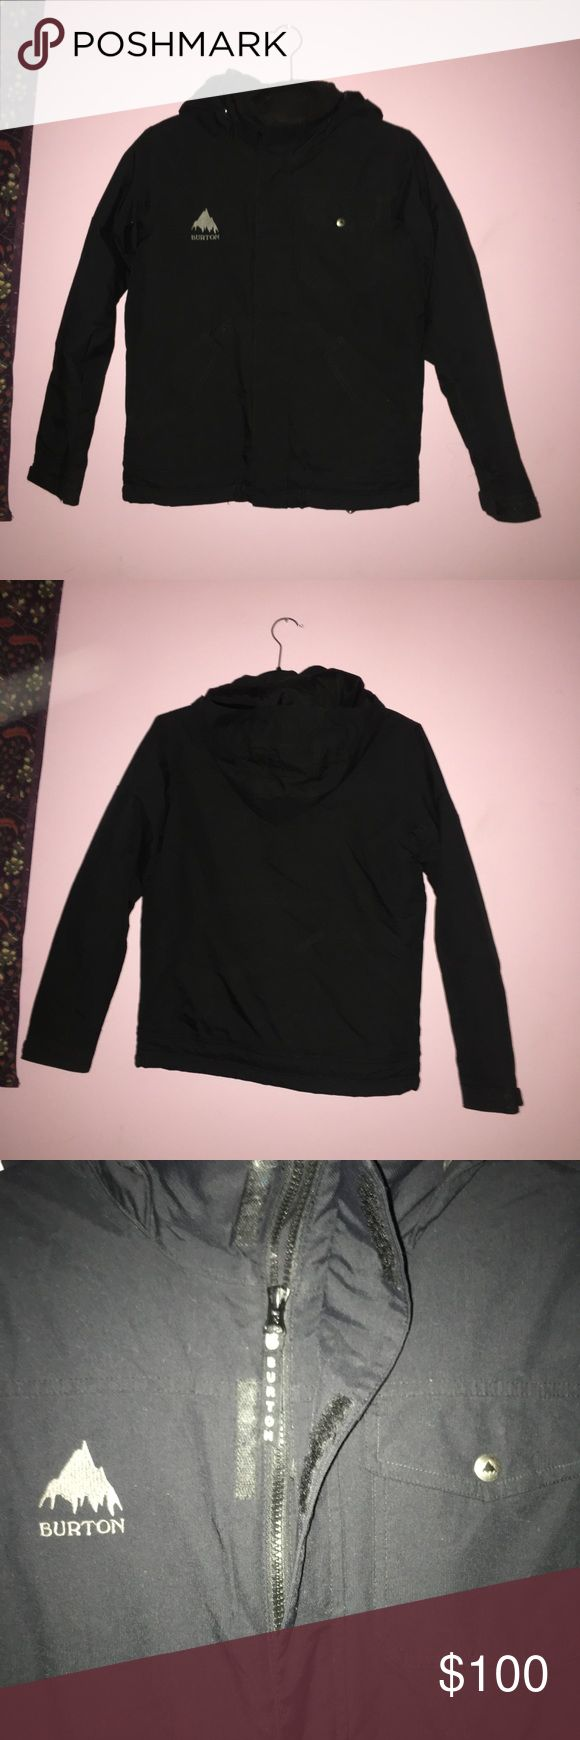 Black Burton Ski Jacket Black Boys ski jacket, (the jacket is technically a boys, but I occasionally wore it and i'm female) Many zippers and extra pockets, hood (removable) Burton Jackets & Coats Puffers